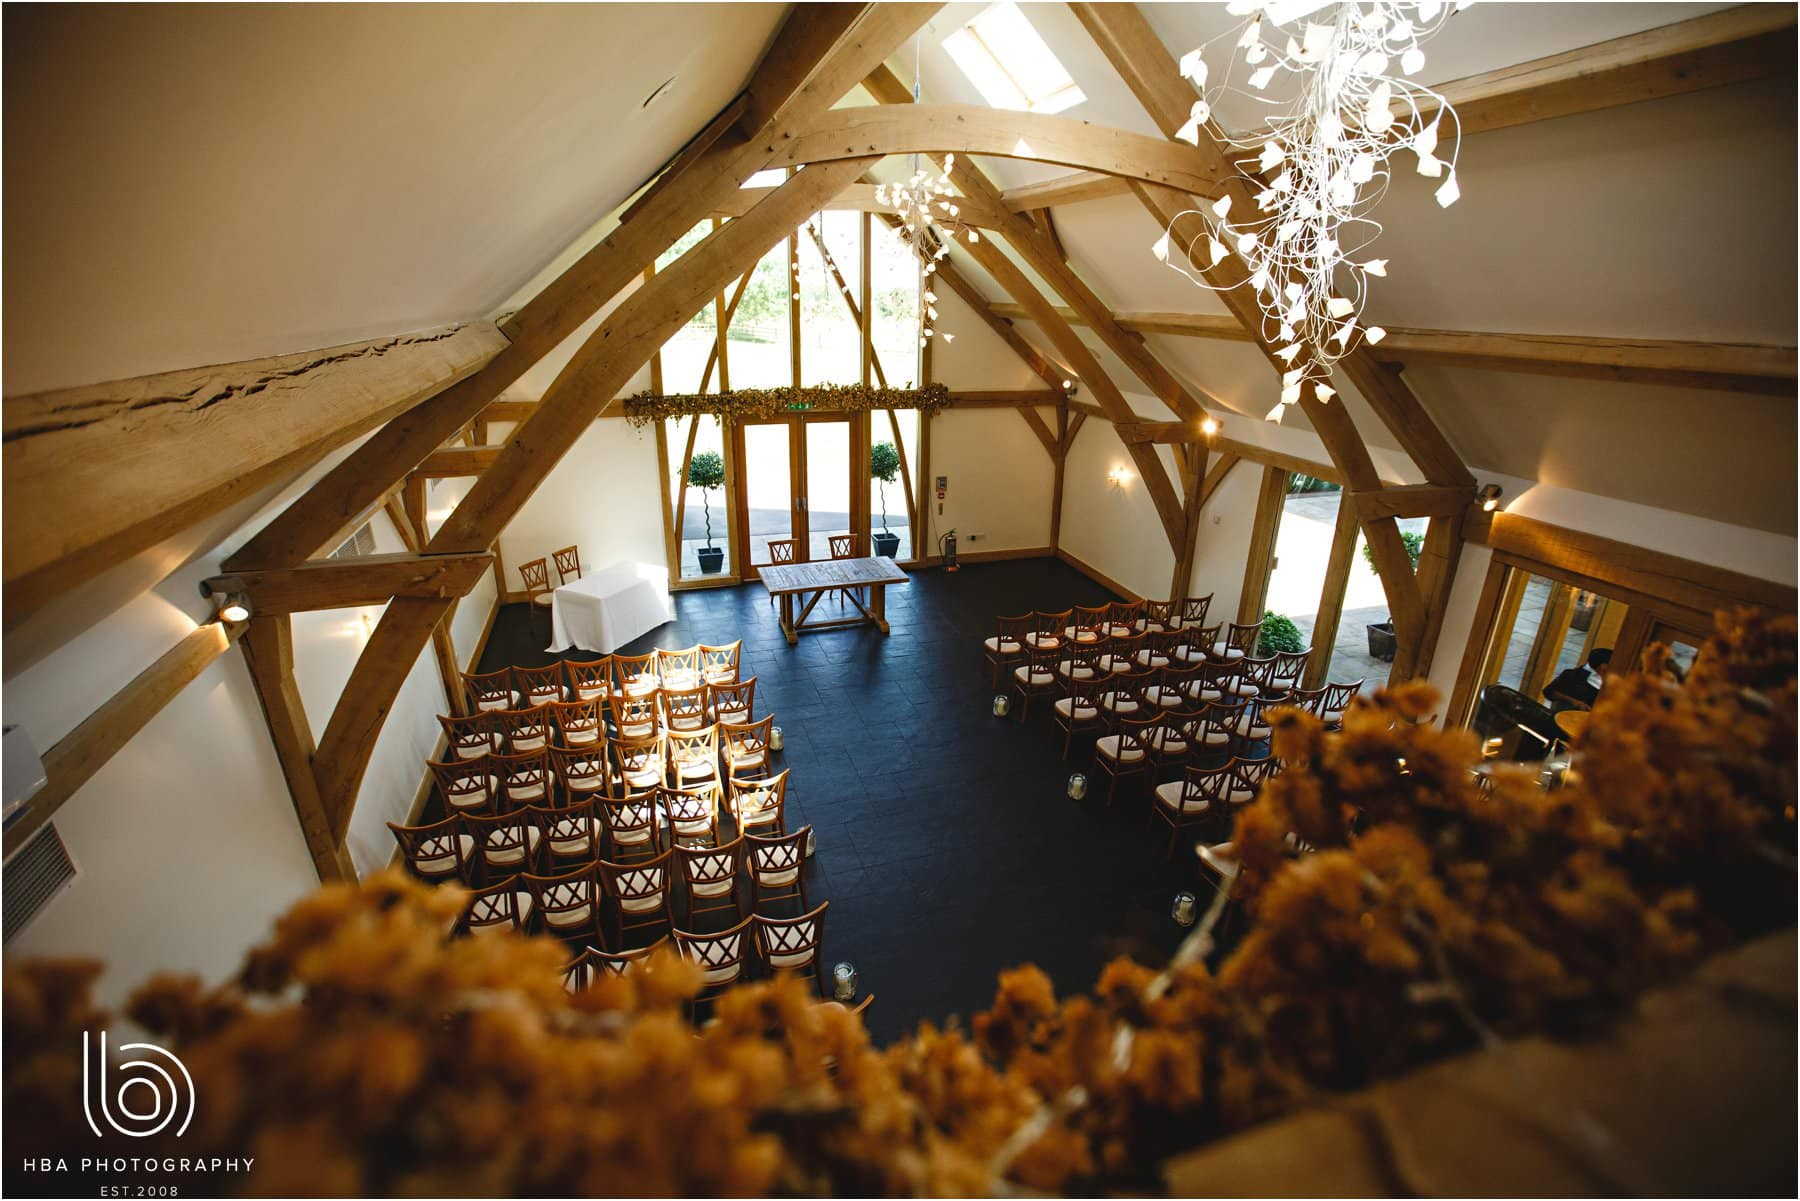 the cermeony room at Mythe Barn